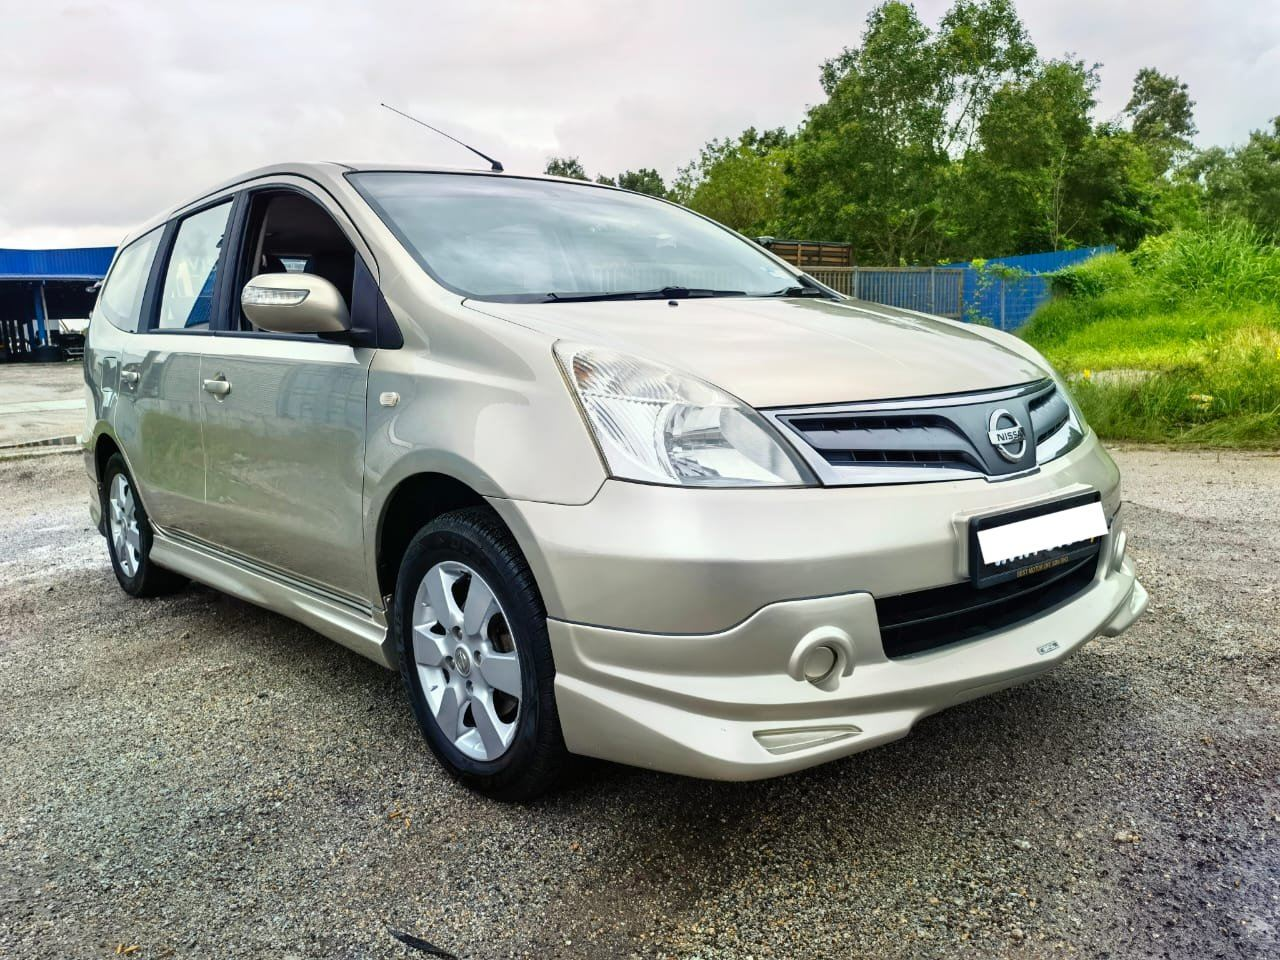 2012 Nissan GRAND LIVINA 1.6 (A)FULL LOAN ZERO DP